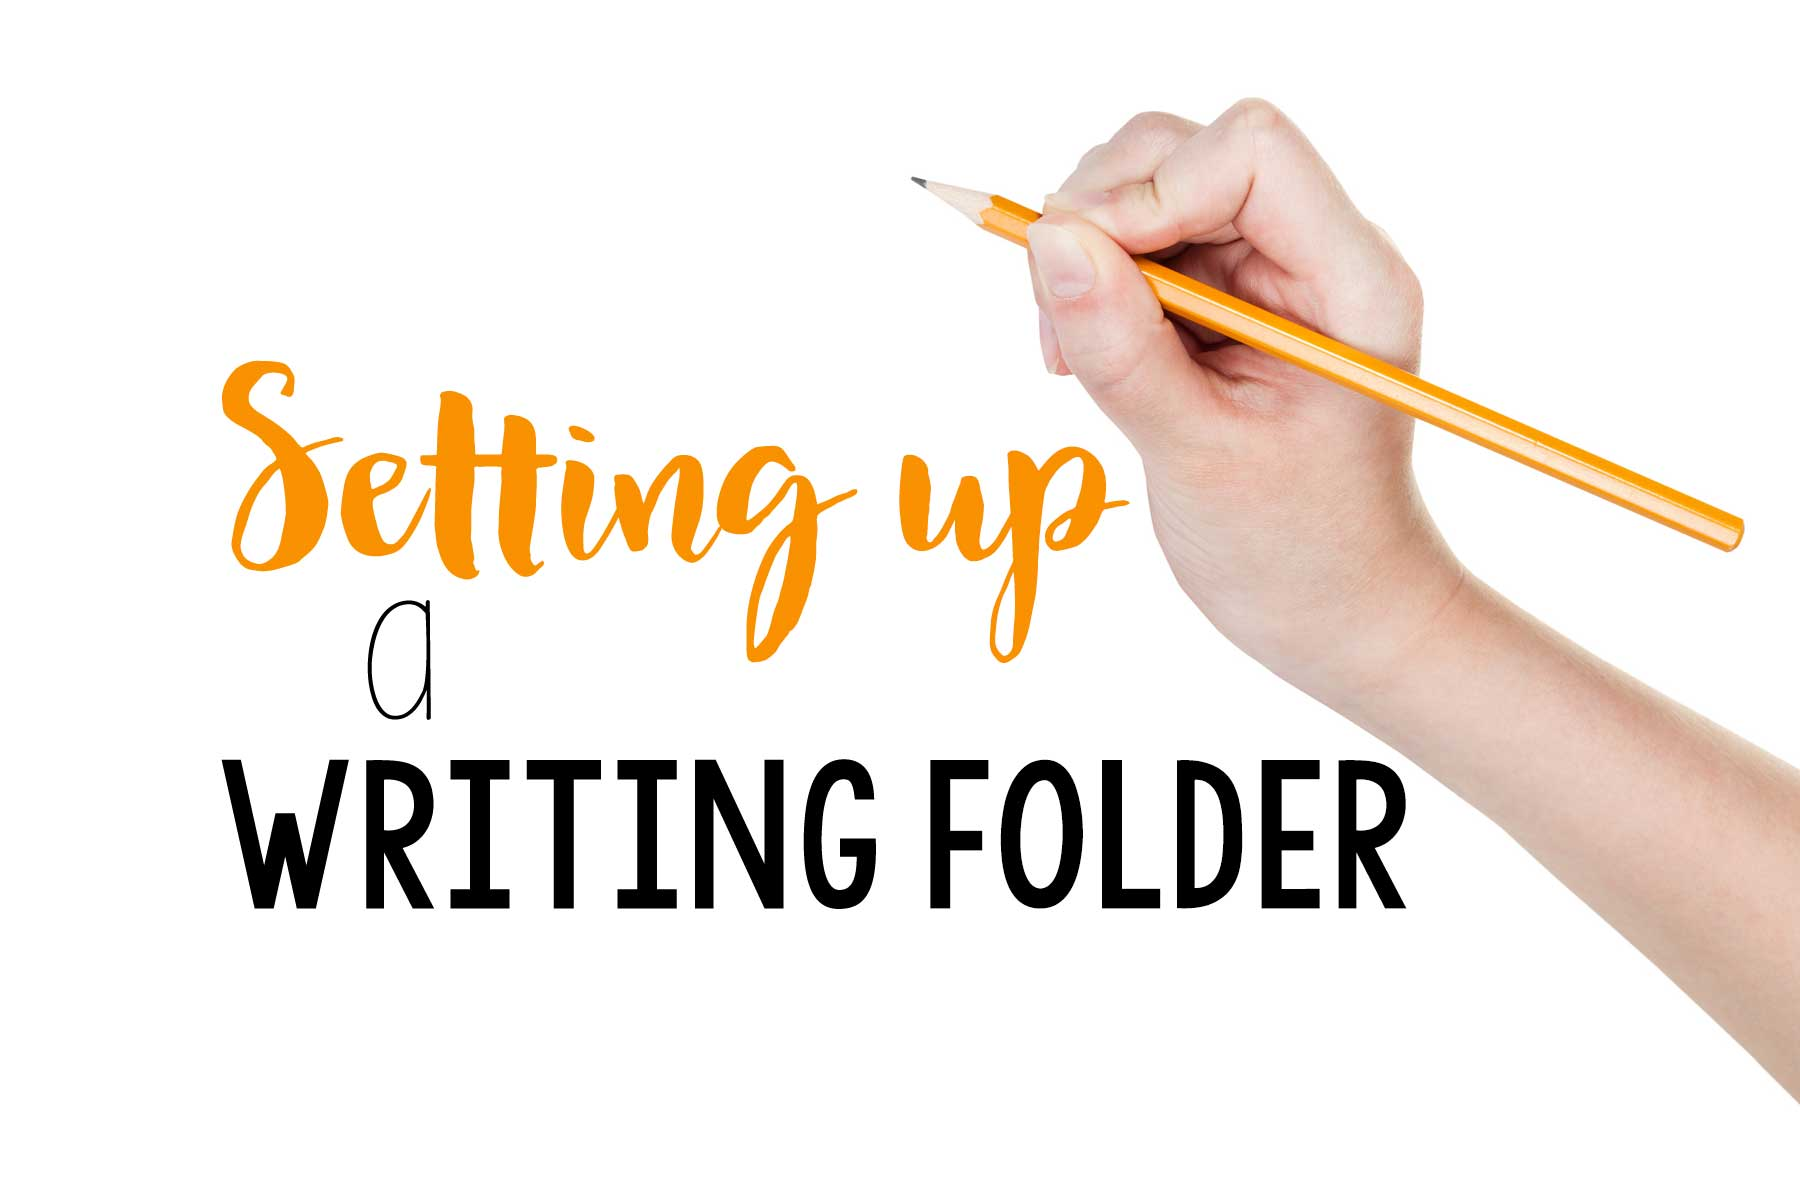 Great ideas for setting up a writing folder.